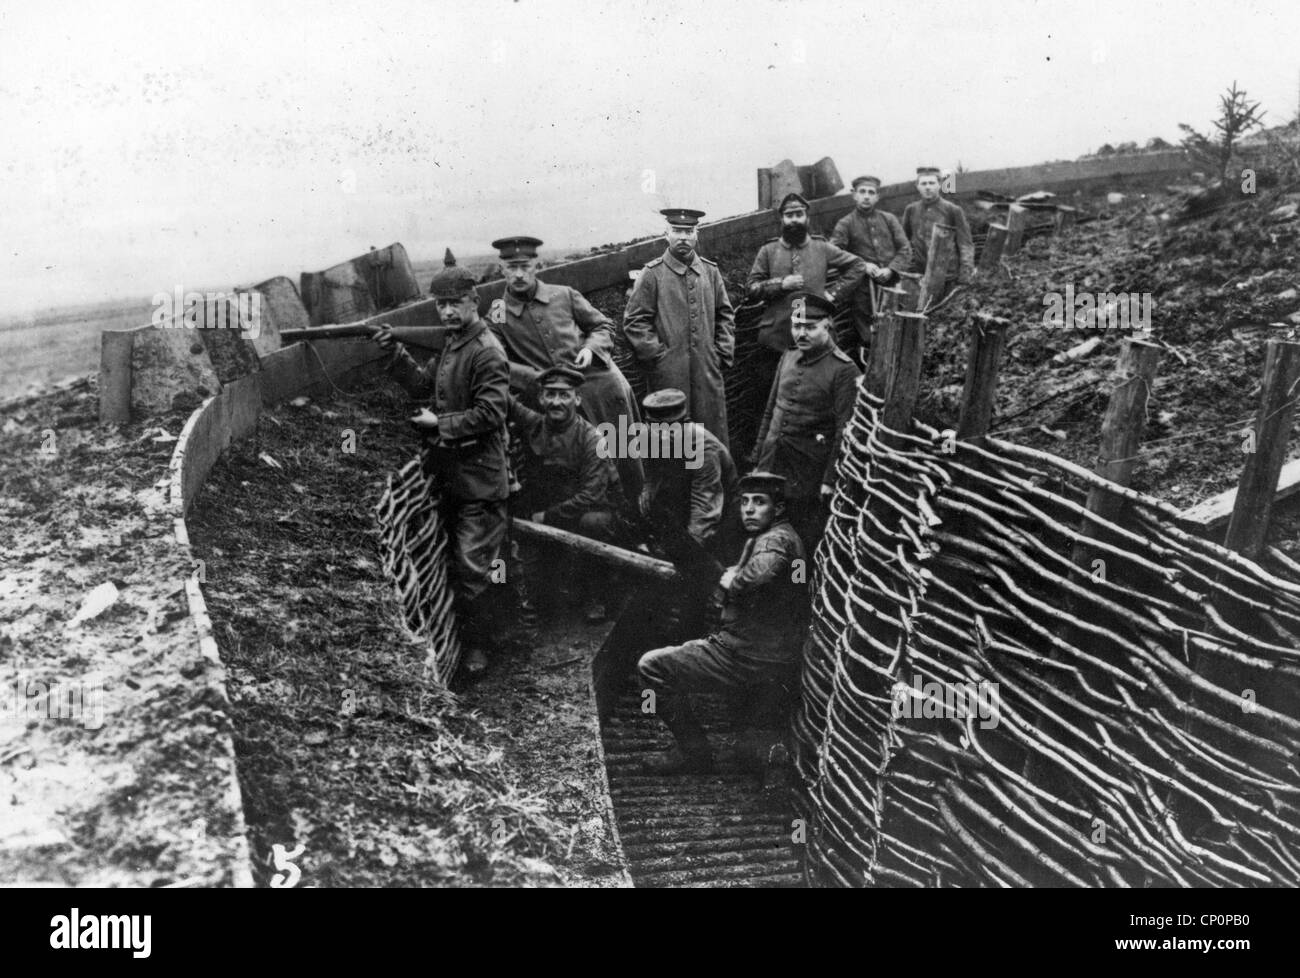 German military soldiers in a trench during World War One - Stock Image